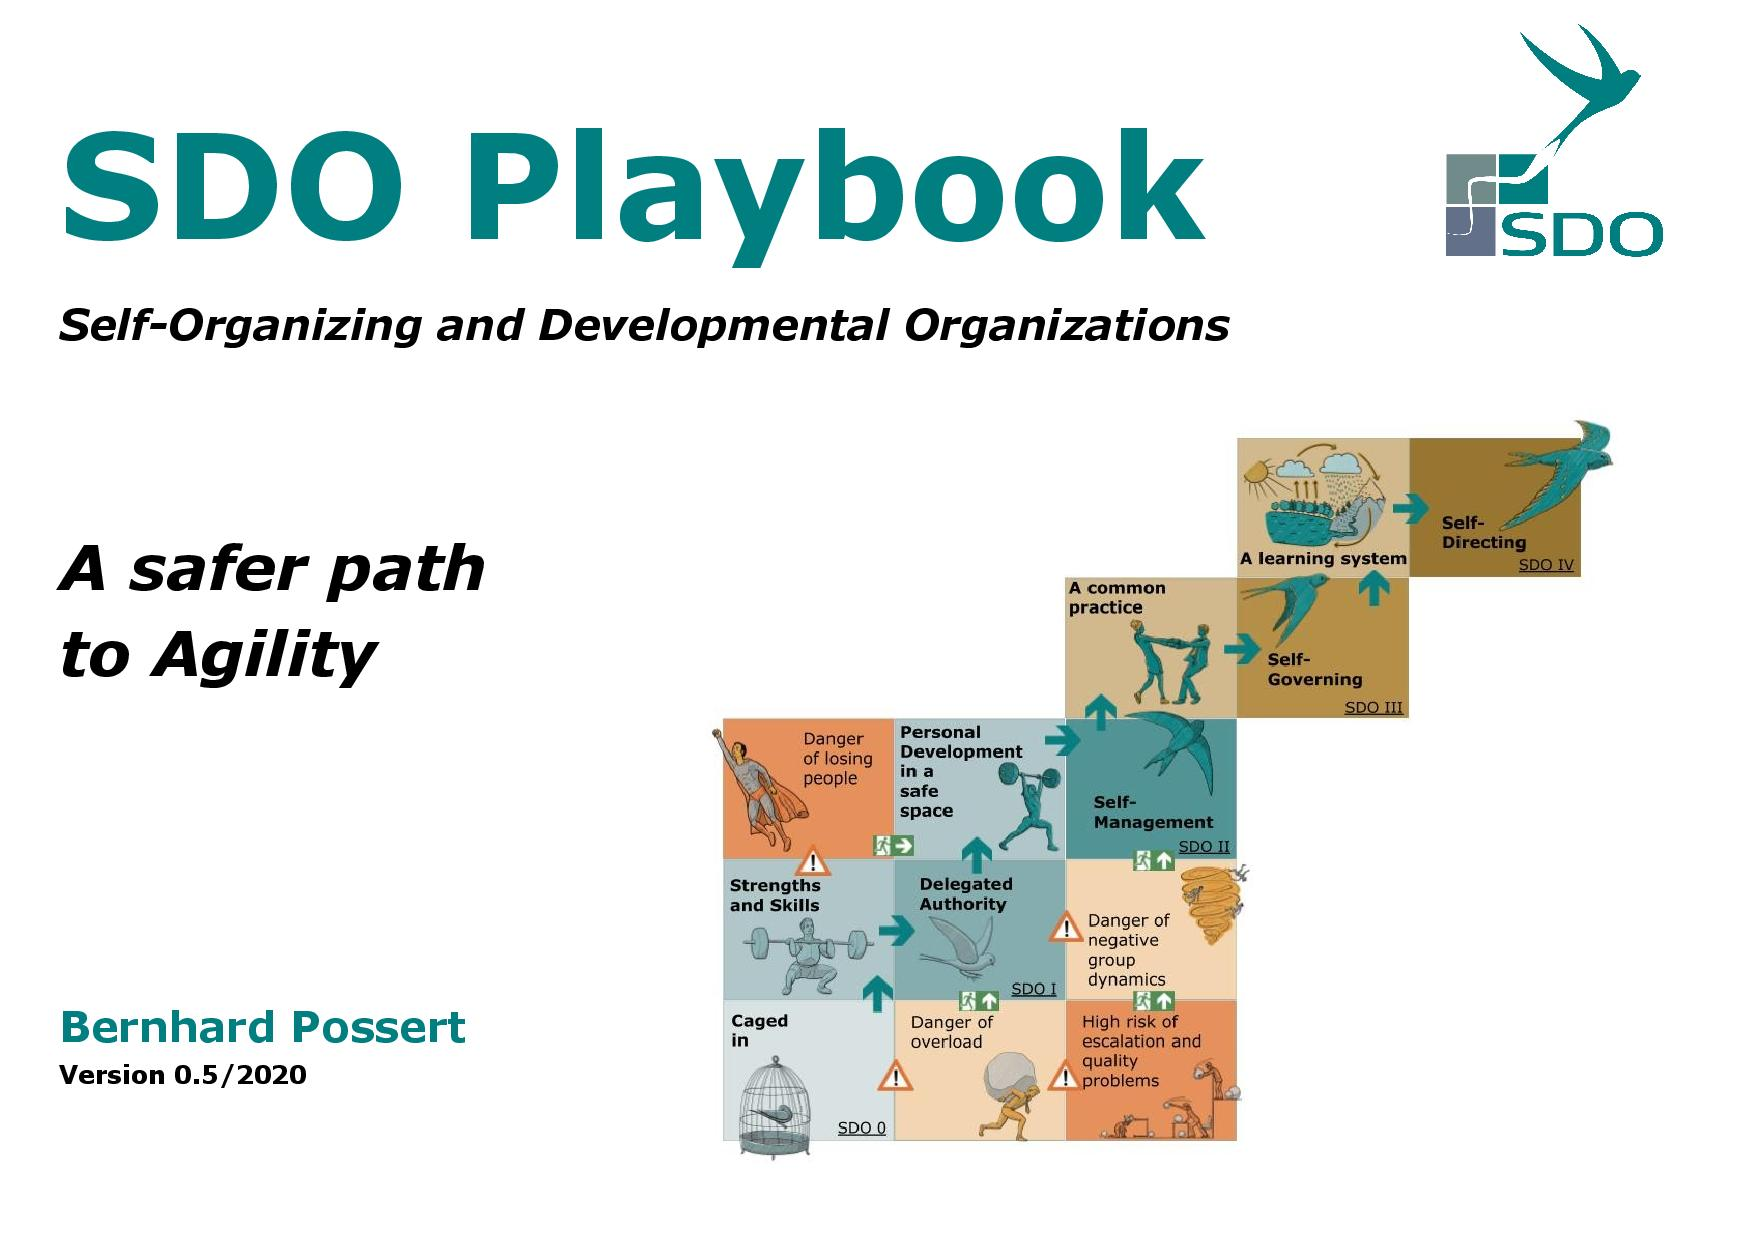 sdo e playbook title 200221